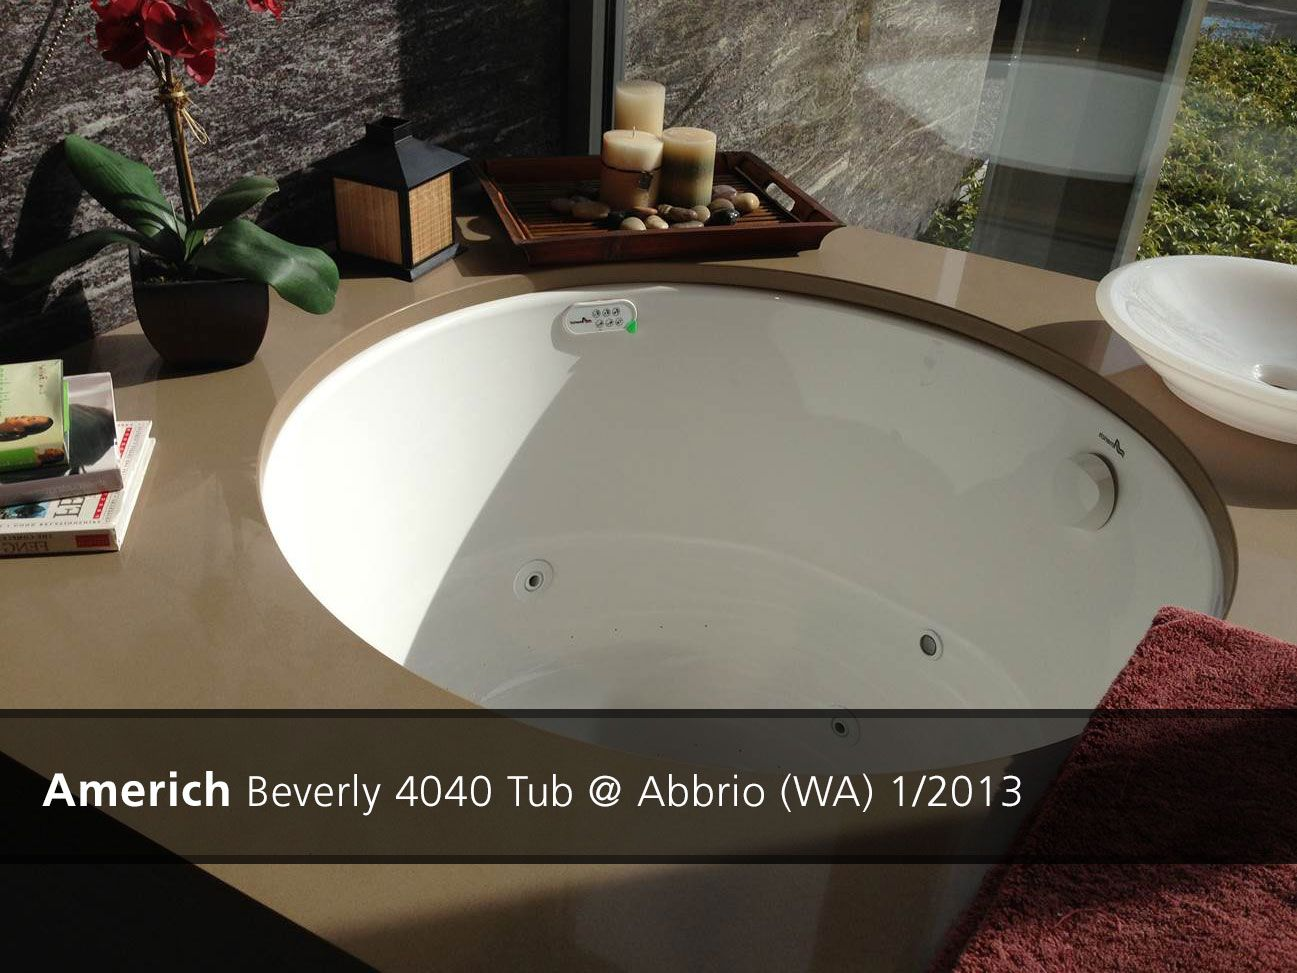 Americh Beverly 4040 Tub With Surround